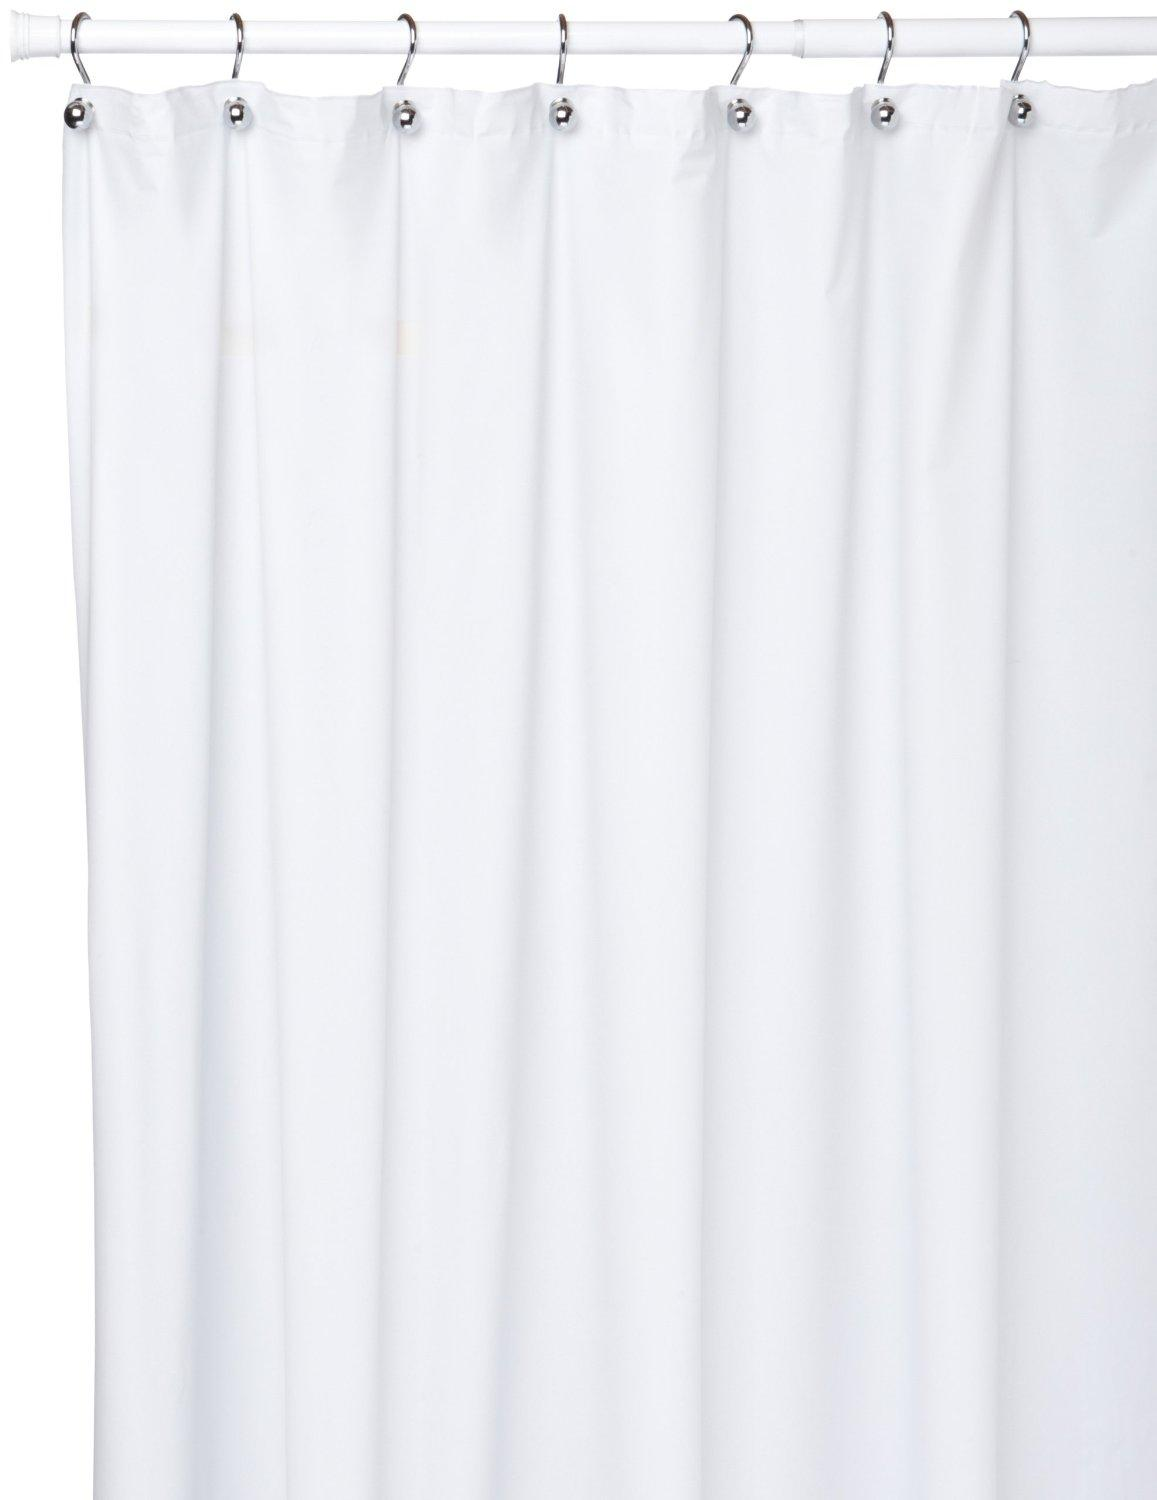 Carnation Home Fashions Inc Extra Long 10 Gauge Vinyl Shower Curtain ...